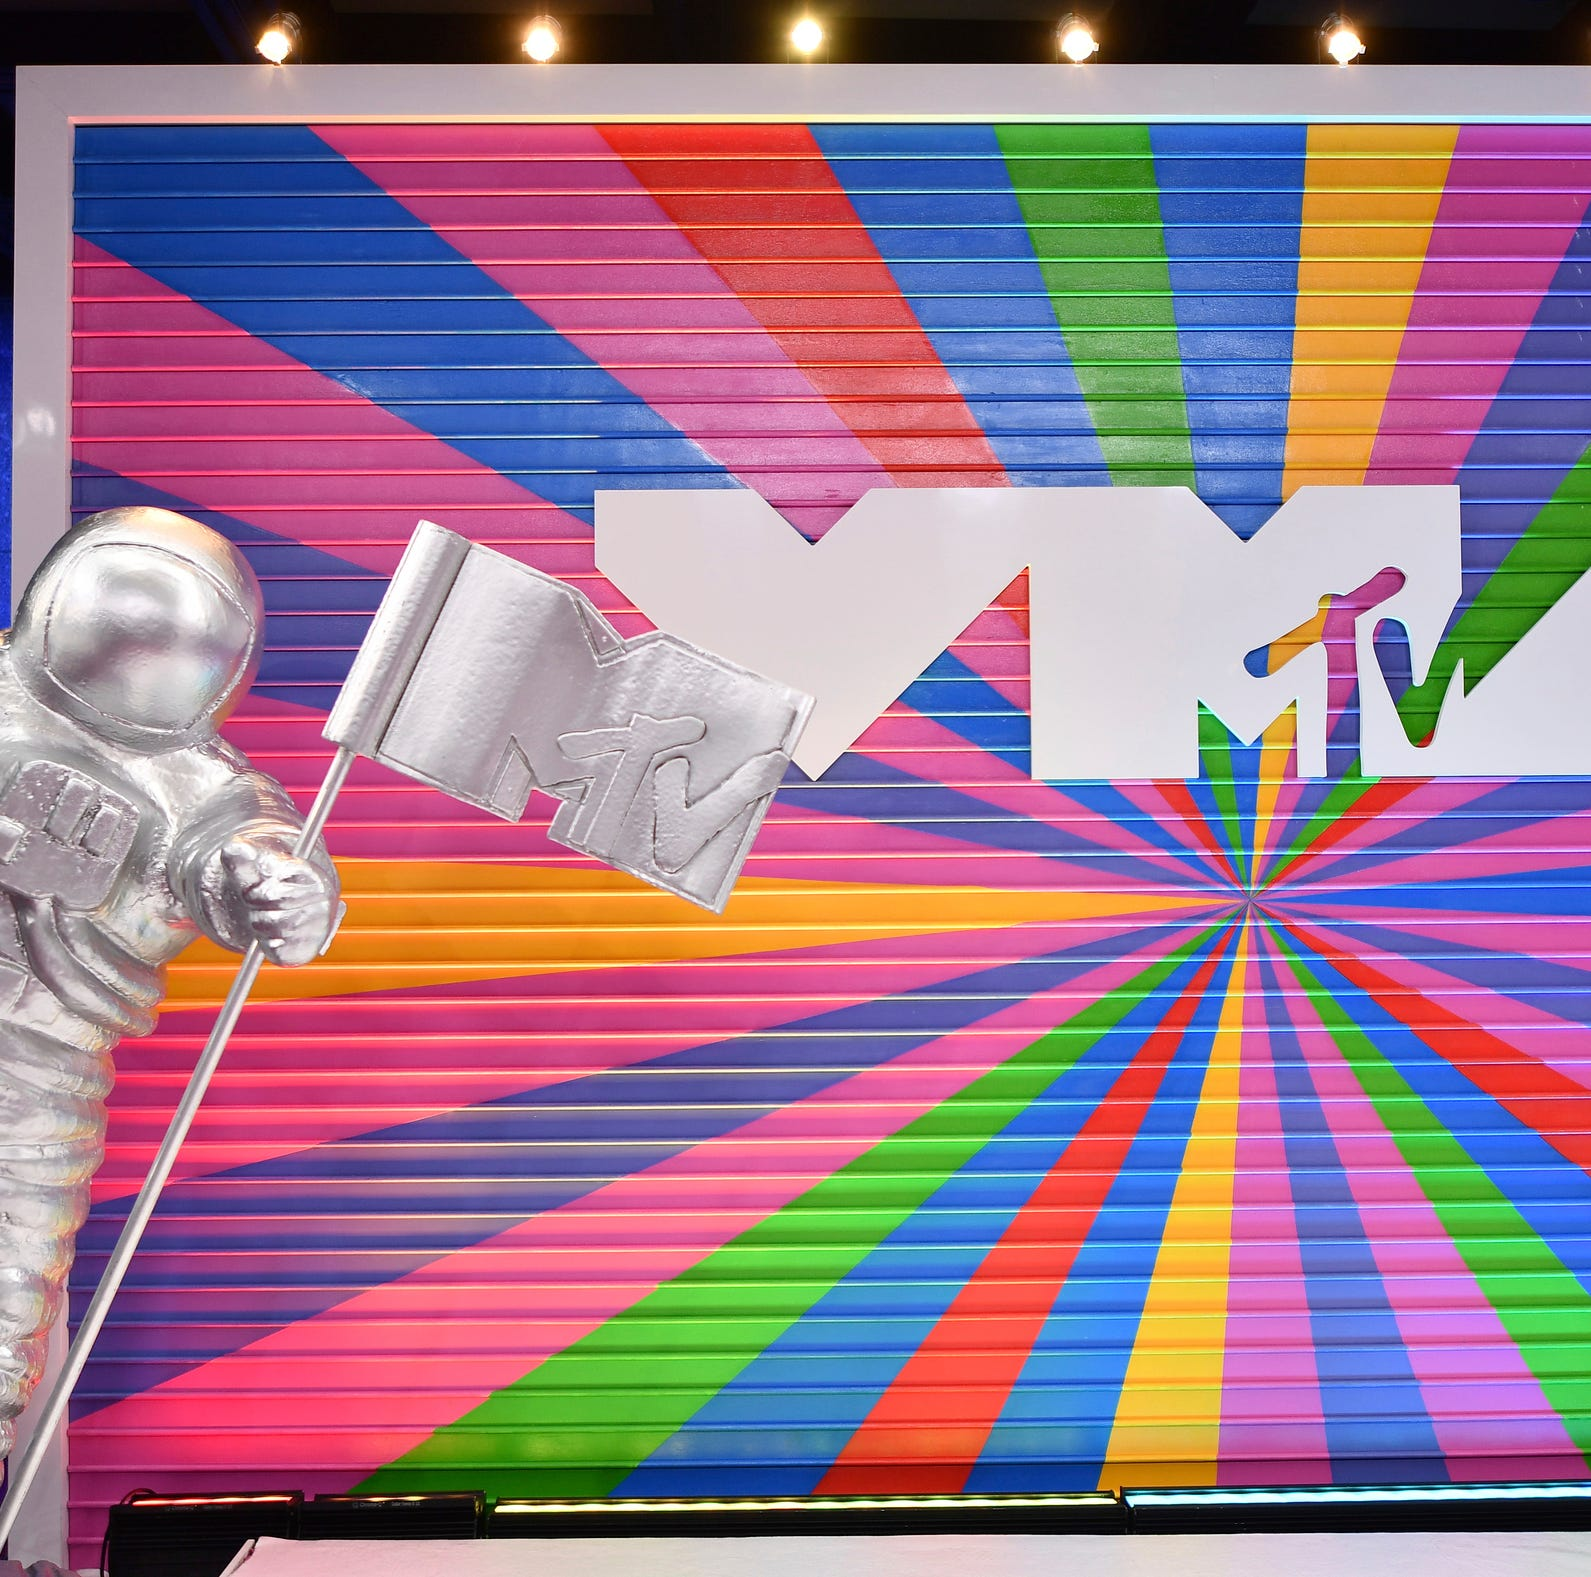 MTV Video Music Awards coming to Prudential Center